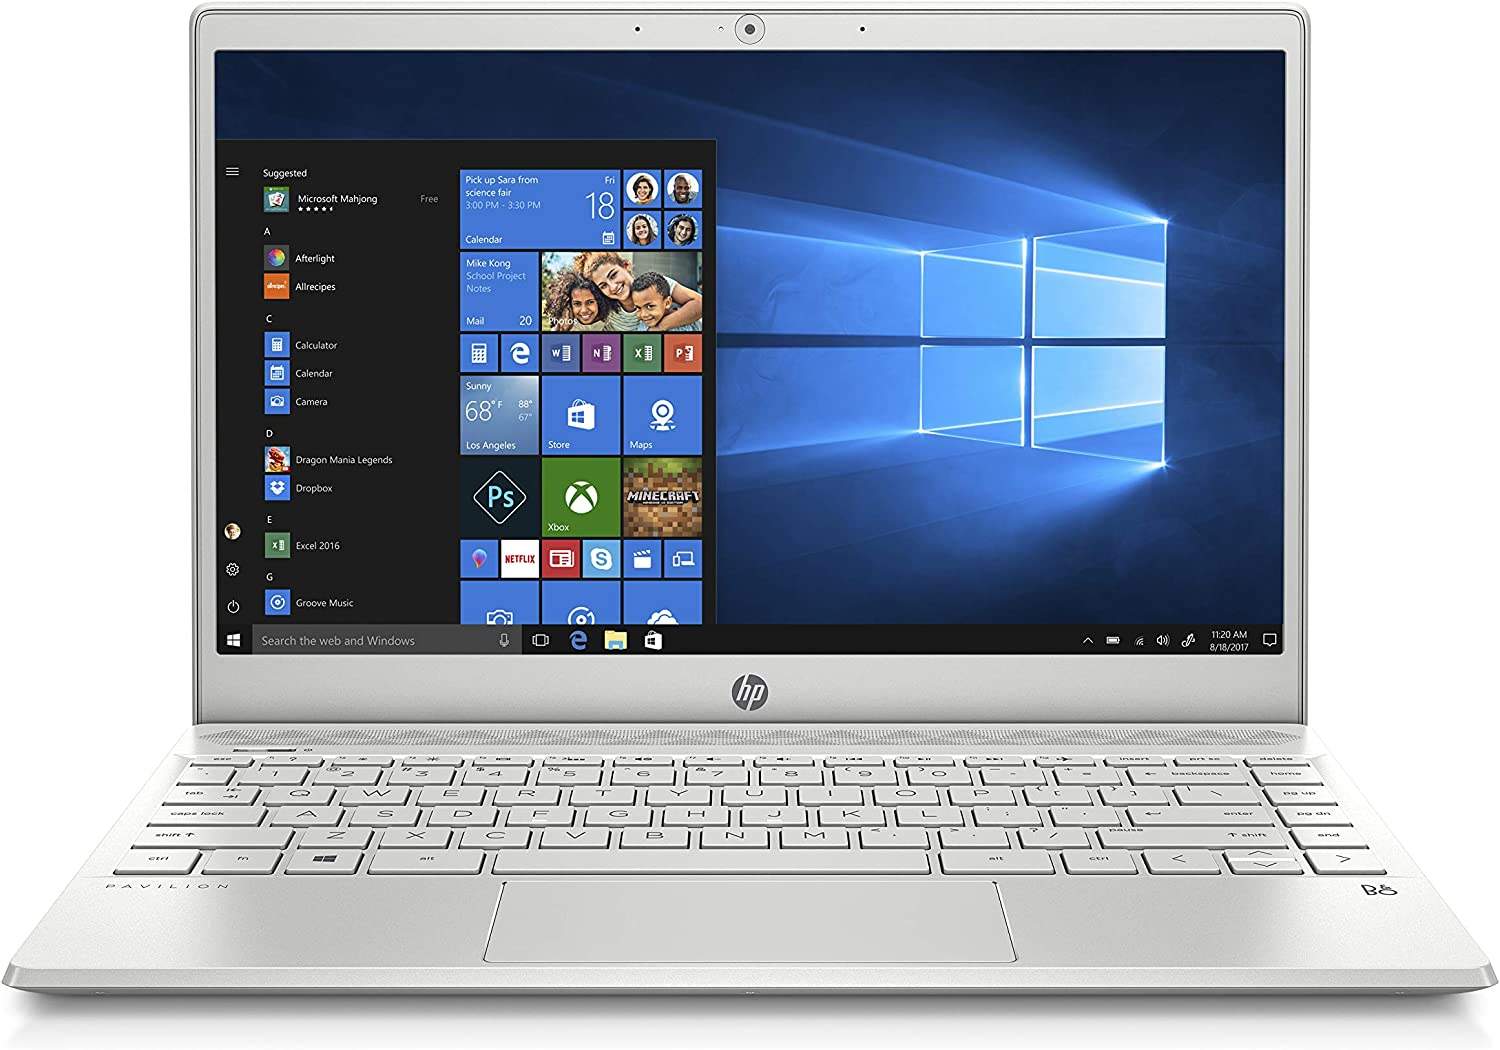 HP Pavilion 13-inch Light and Thin Laptop Intel Core i5-8265U Processor, 8 GB SDRAM Memory, 256 GB Solid-State Drive, Windows 10 (13-an0010nr, Mineral Silver) (4WJ36UA#ABA)